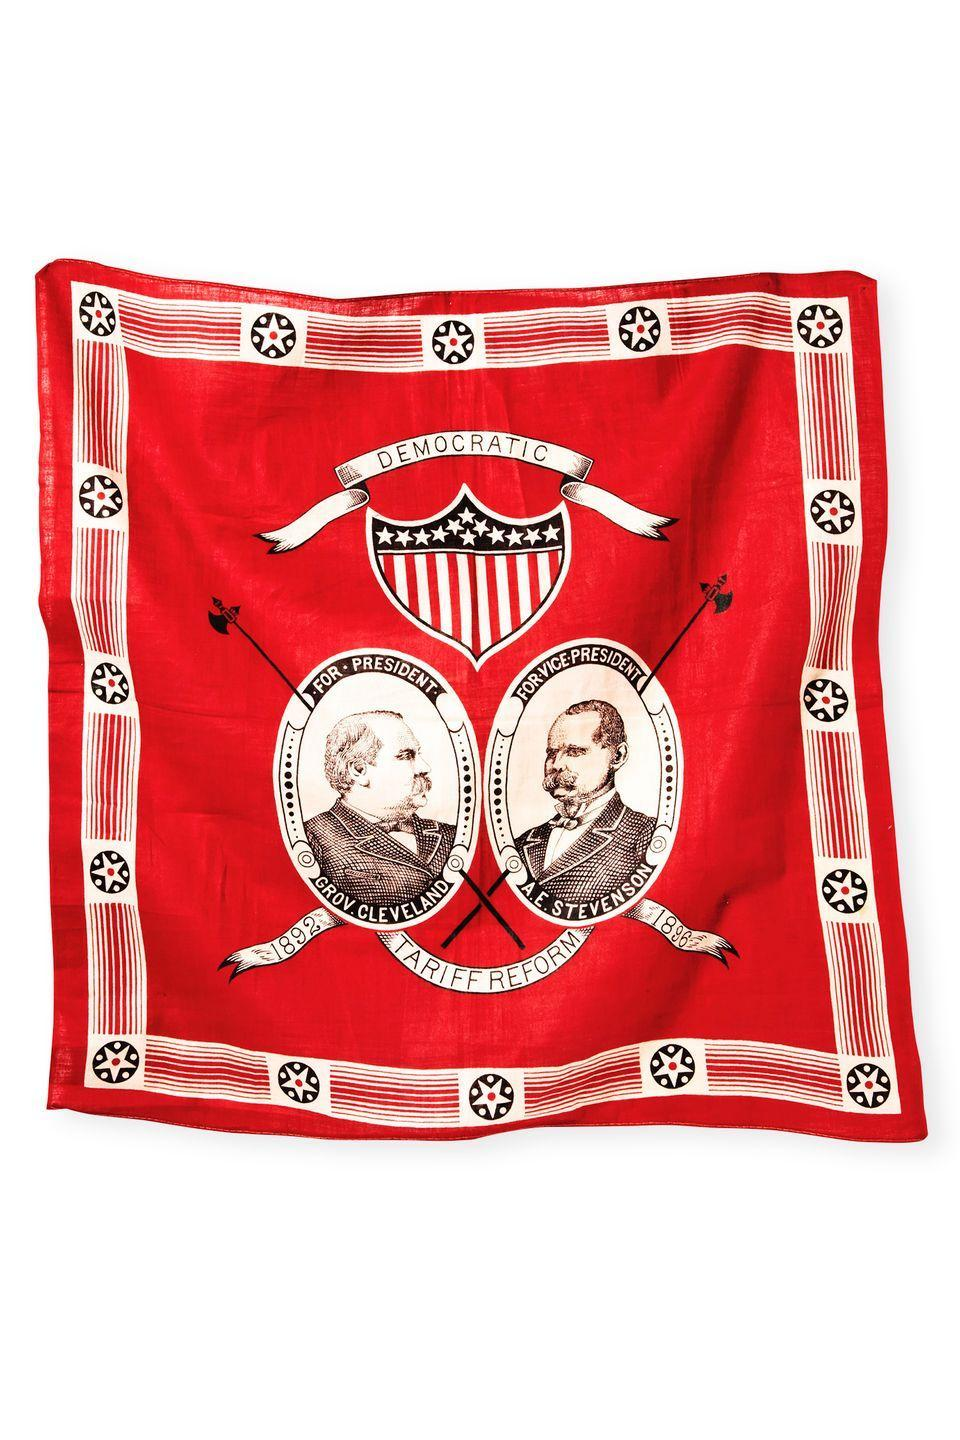 <p><strong>What it was worth (2012):</strong> $1,200</p><p><strong>What it's worth now: </strong>$500</p><p>This vintage bandana displays the faces of the 22nd President of the United States, Grover Cleveland, and his second Vice President, Adlai Stevenson.</p>